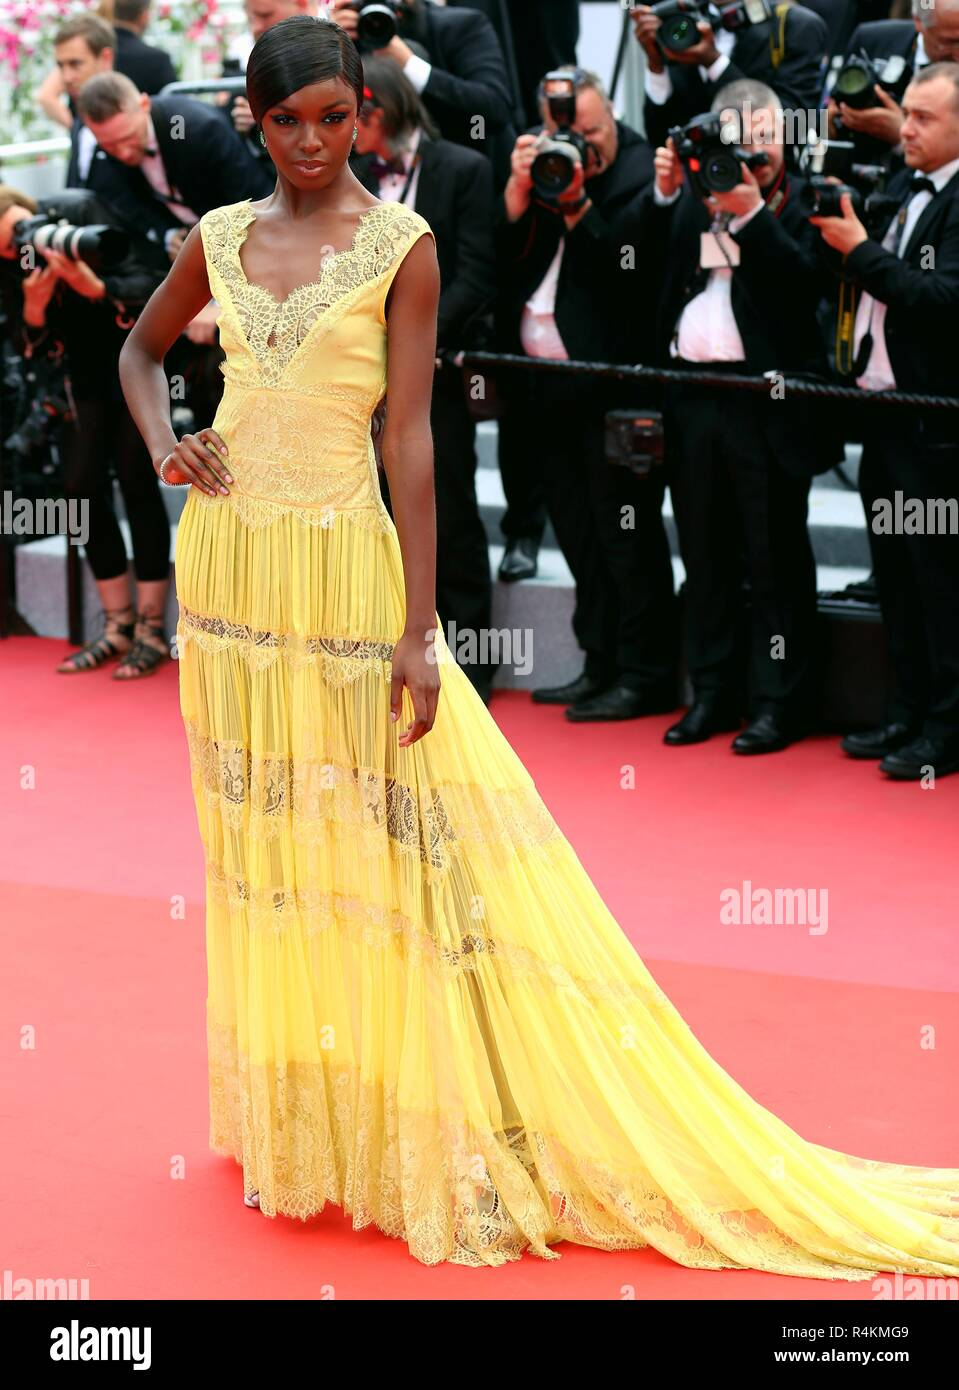 CANNES, FRANCE – MAY 09, 2018: Leomie Anderson walks the red carpet ahead of the 'Yomeddine' screening at the 71st Festival de Cannes - Stock Image